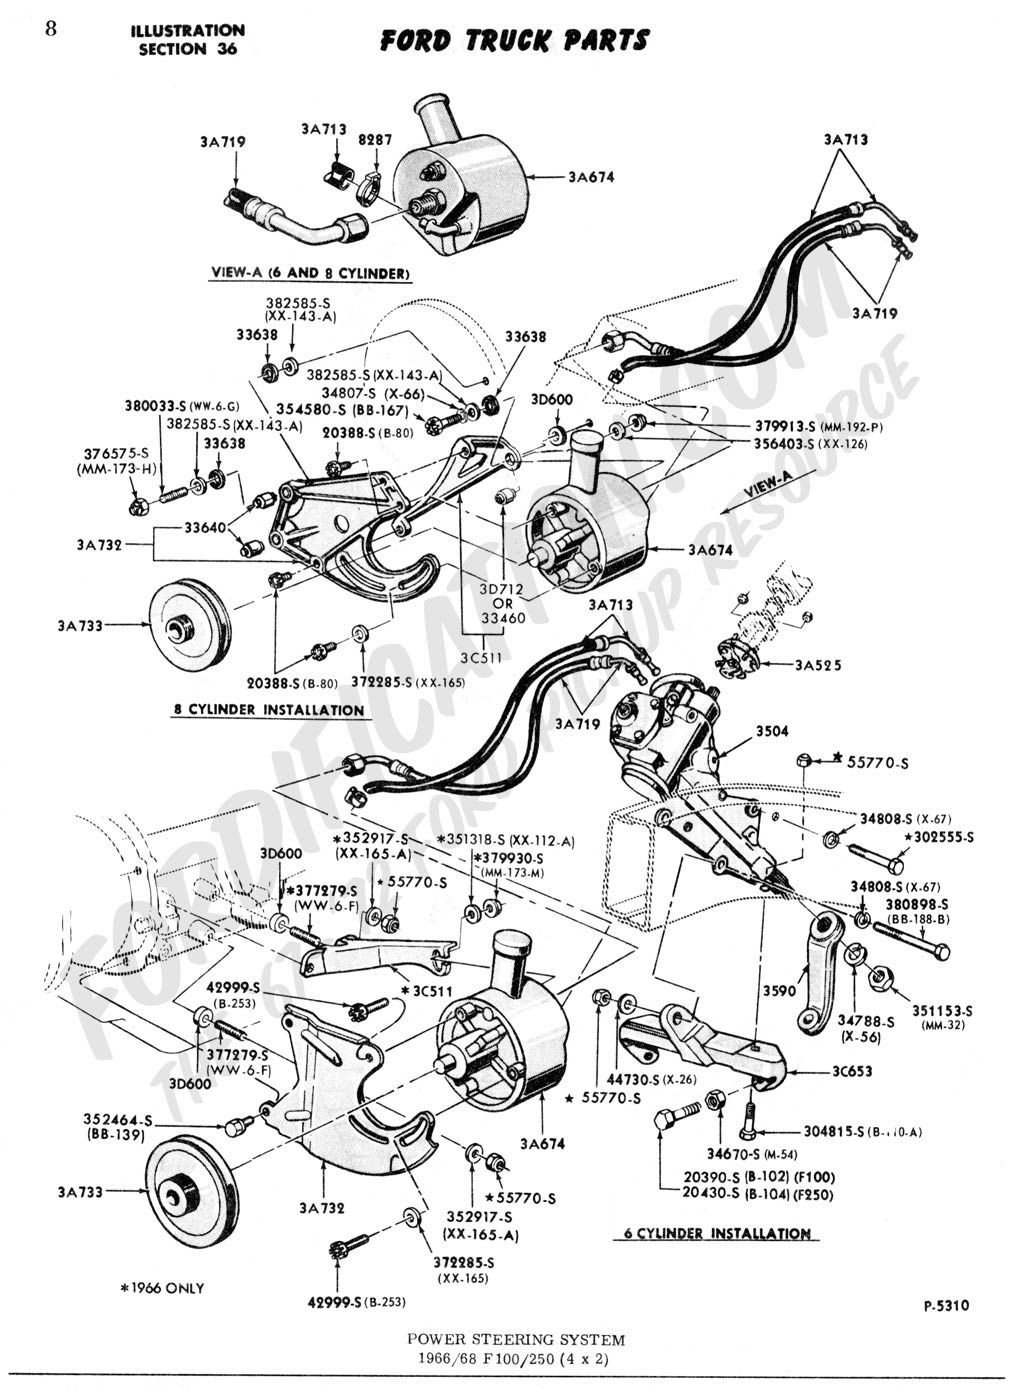 Mustang Engine V8 Vs V6